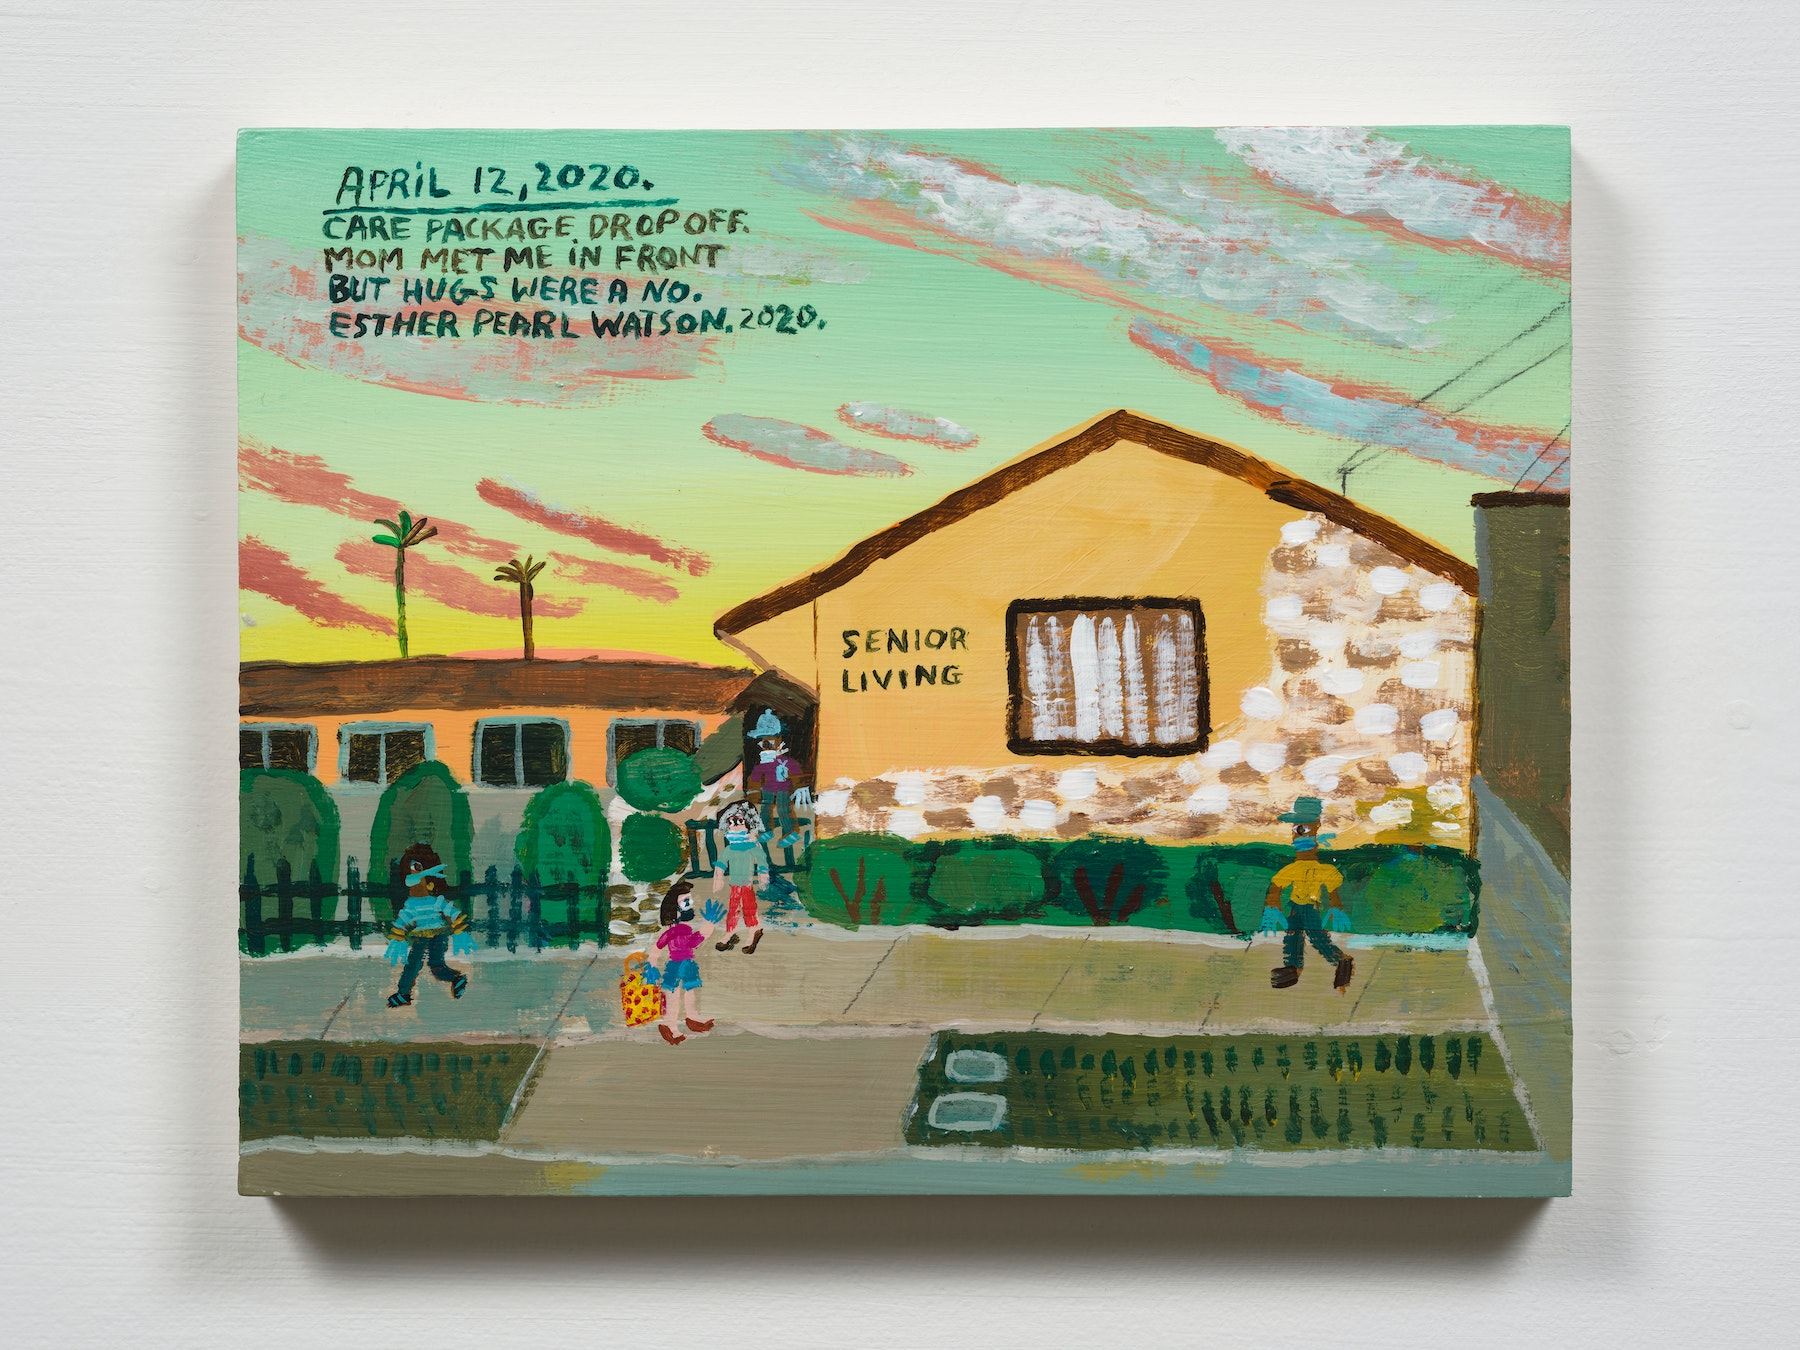 """Esther Pearl Watson """"April 12, Hugs Were A No,"""" 2020 Acrylic with pencil on panel 8 x 10"""" [HxW] (20.32 x 25.4 cm) Inventory #EPW259 Courtesy of the artist and Vielmetter Los Angeles Photo credit: Jeff Mclane"""